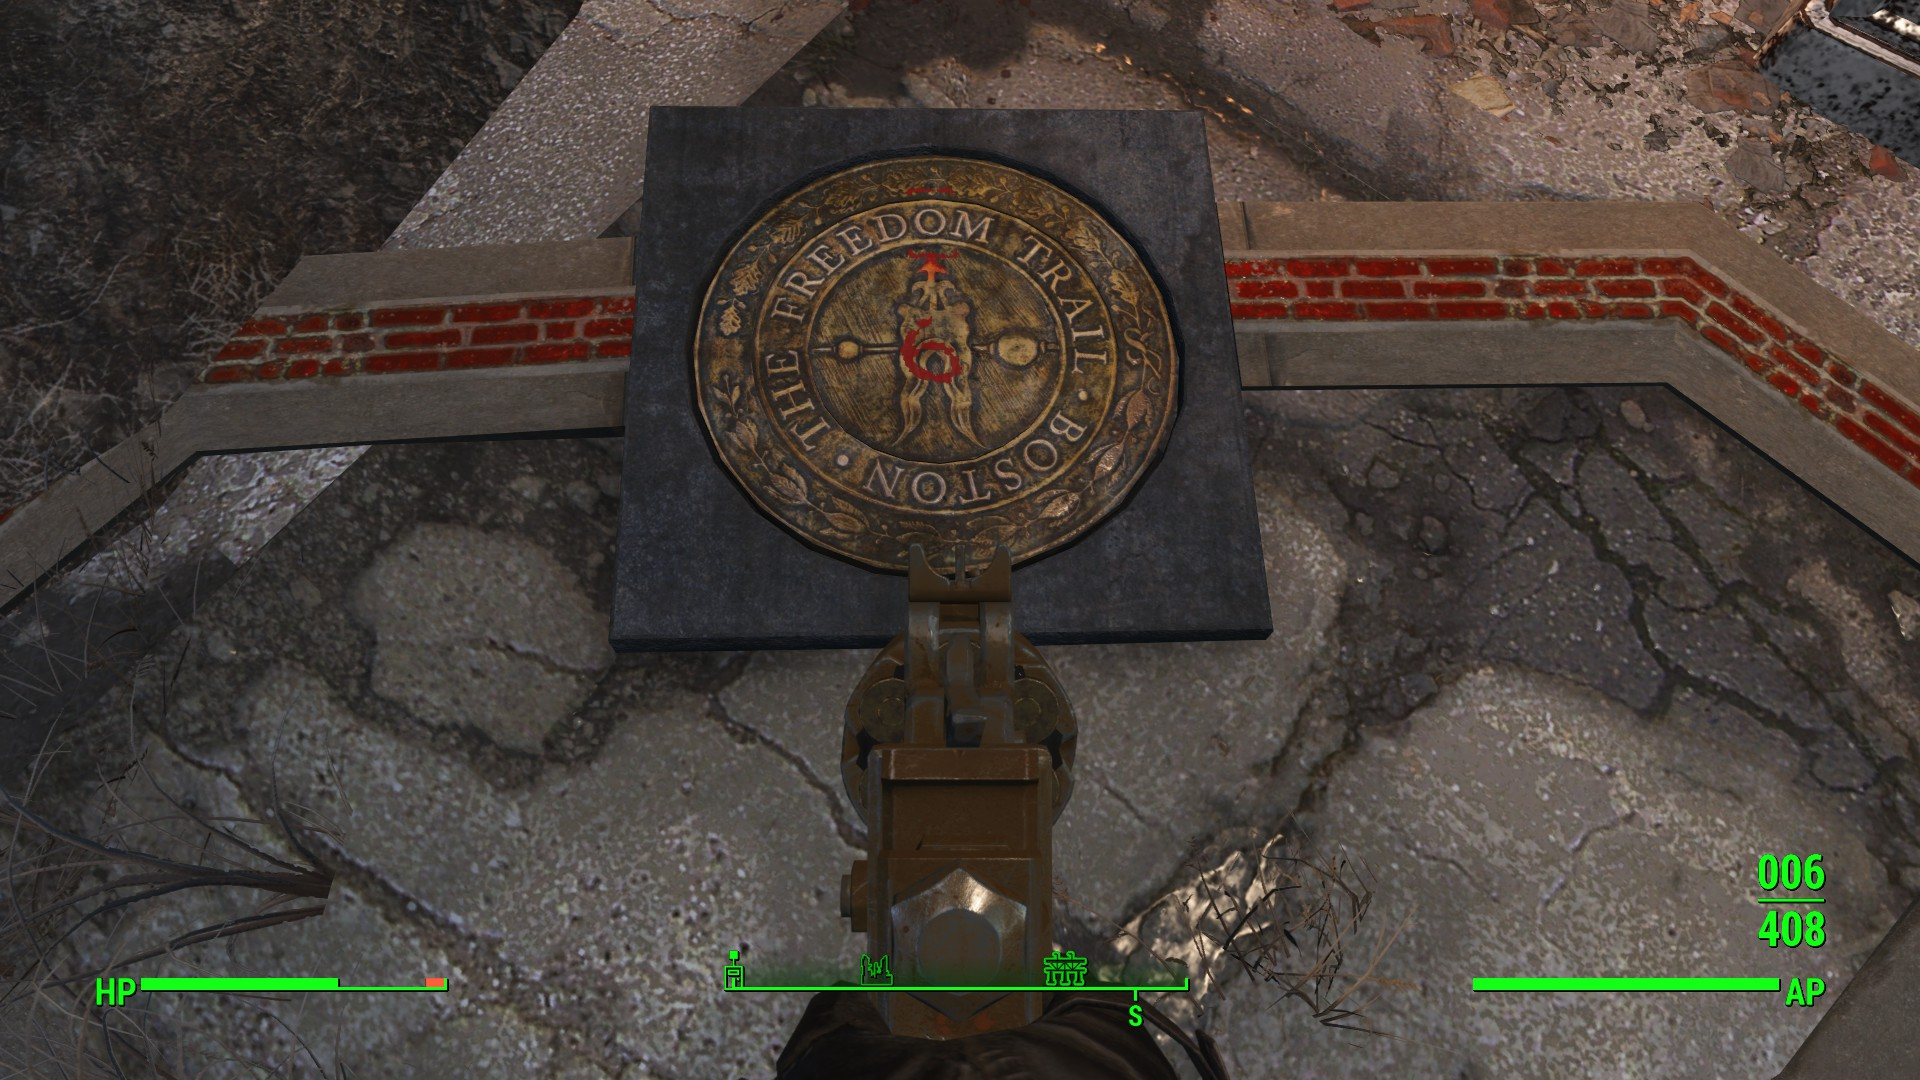 fallout 4 freedom trail puzzle code